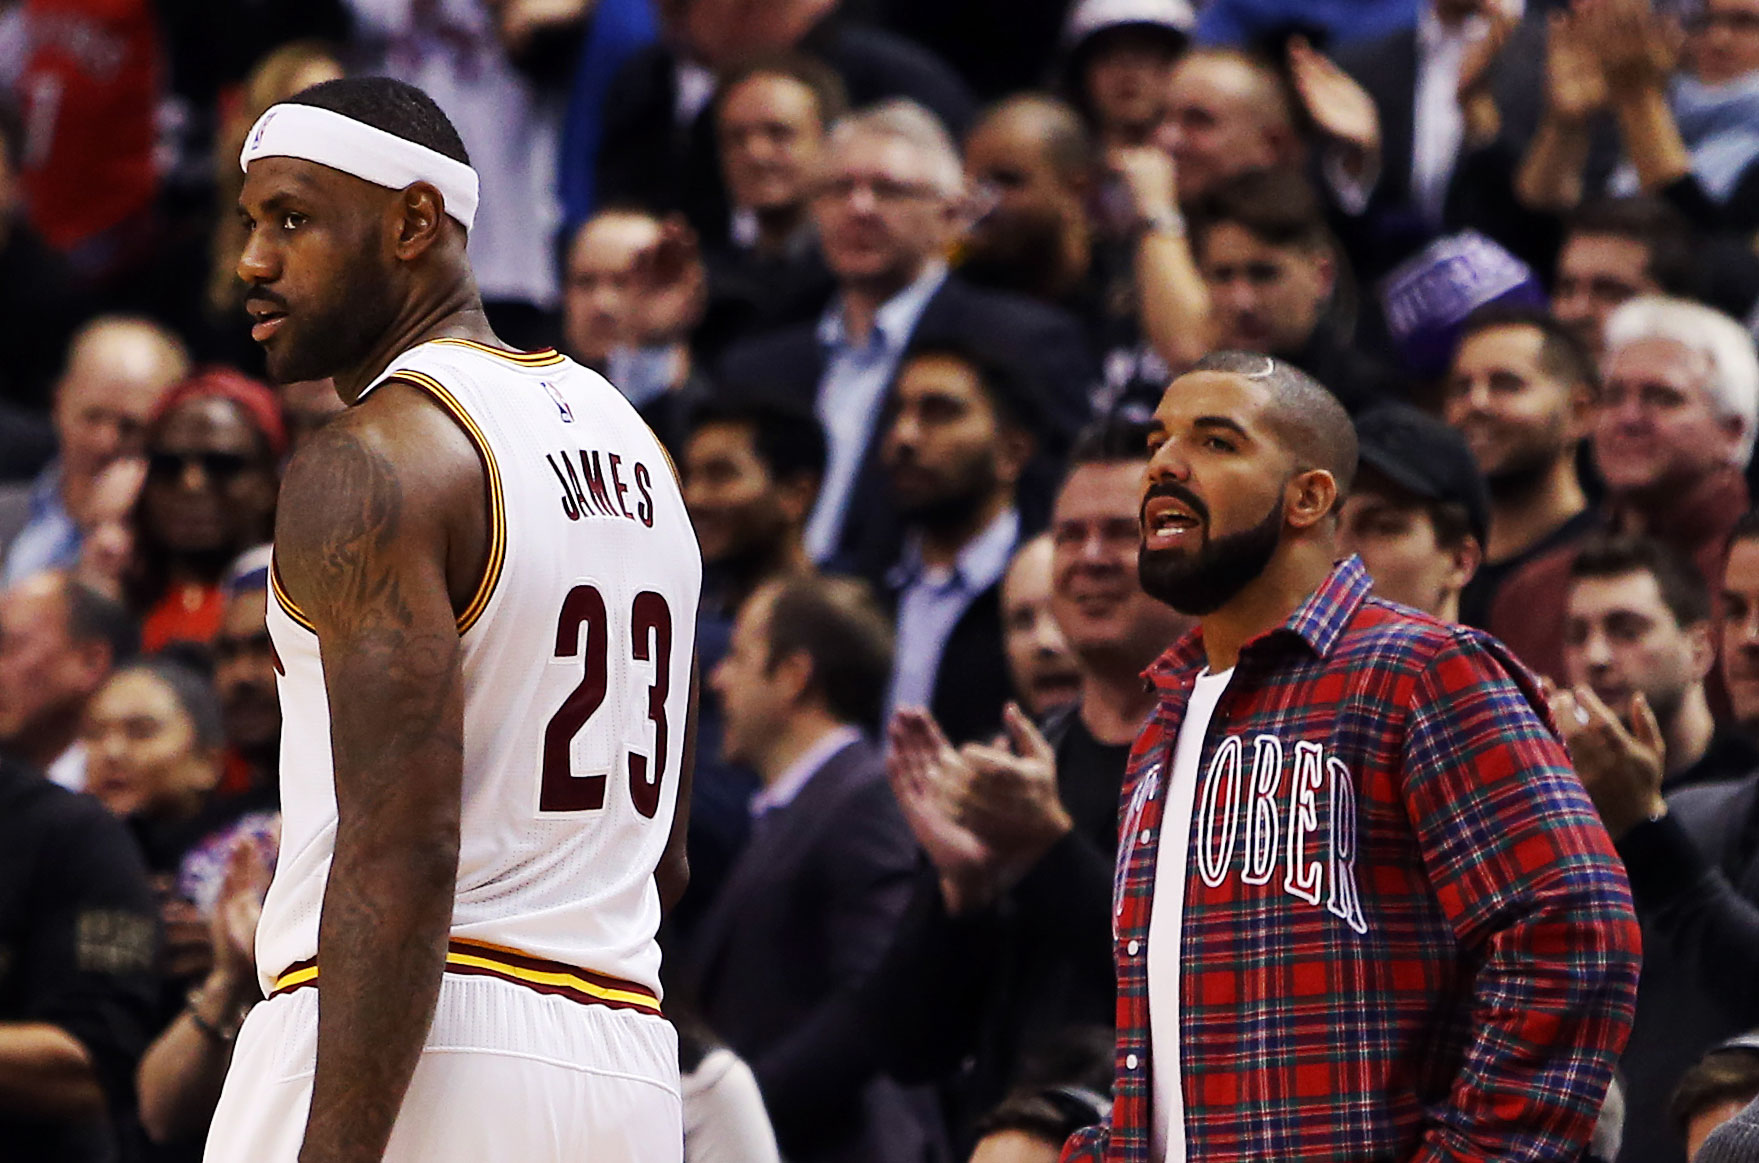 Drake talks to LeBron James  23 of the Cleveland Cavaliers during an NBA  game between the Cleveland Cavaliers and the Toronto Raptors at the Air  Canada ... 30f1a0278